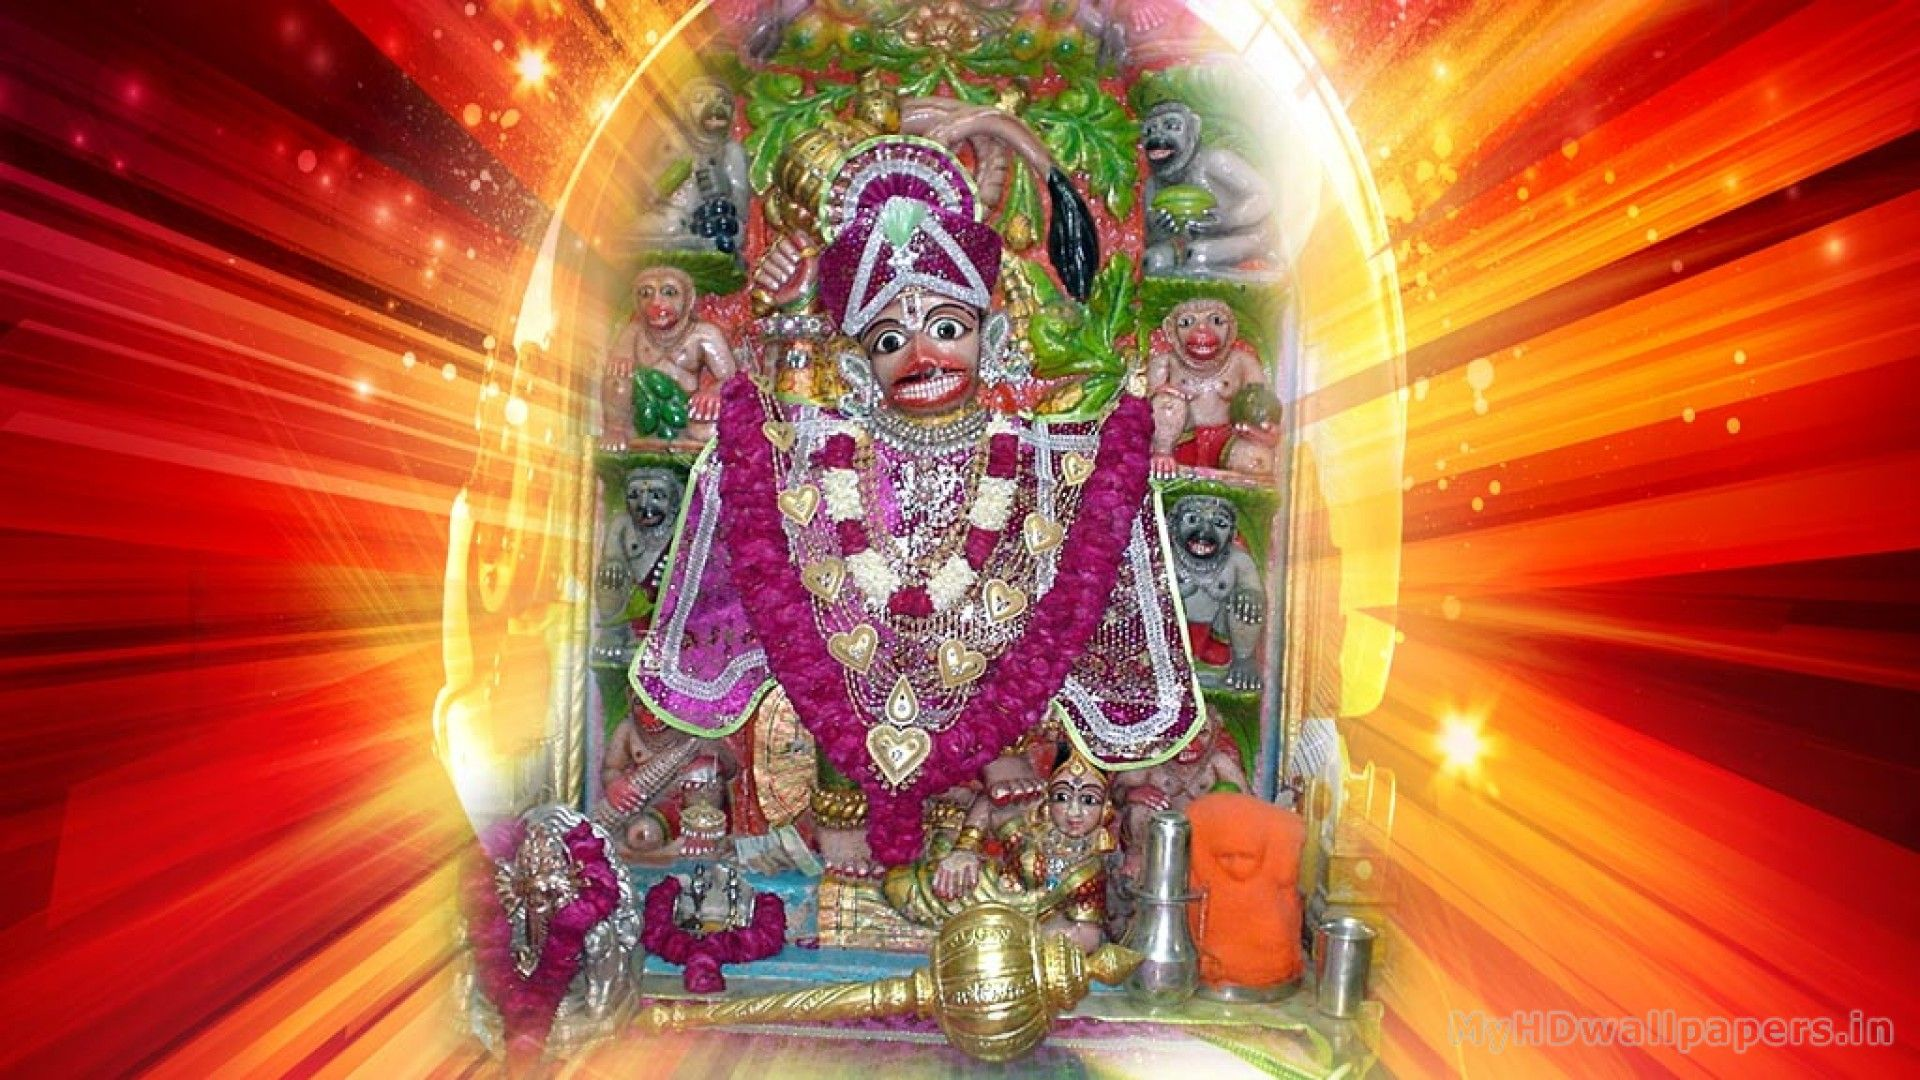 Sarangpur Hanuman Wallpaper Hd Wallpapers Hanuman Wallpaper Sarangpur Hanuman Hanuman